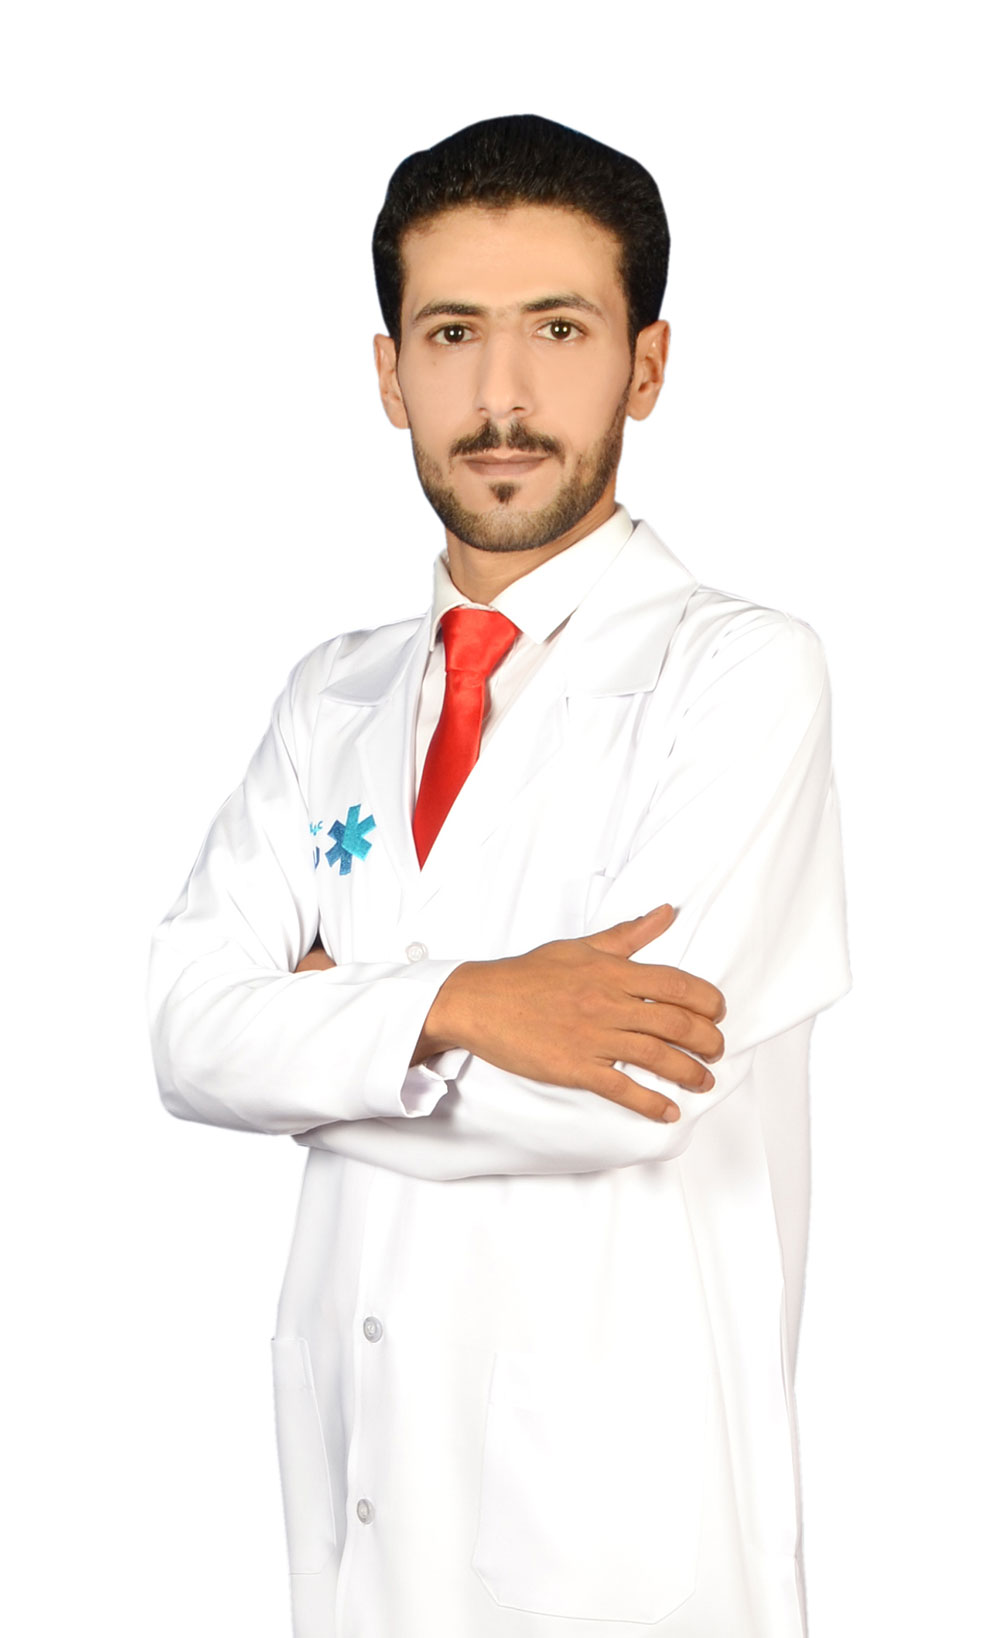 Dr. Ahmed Al Sharif